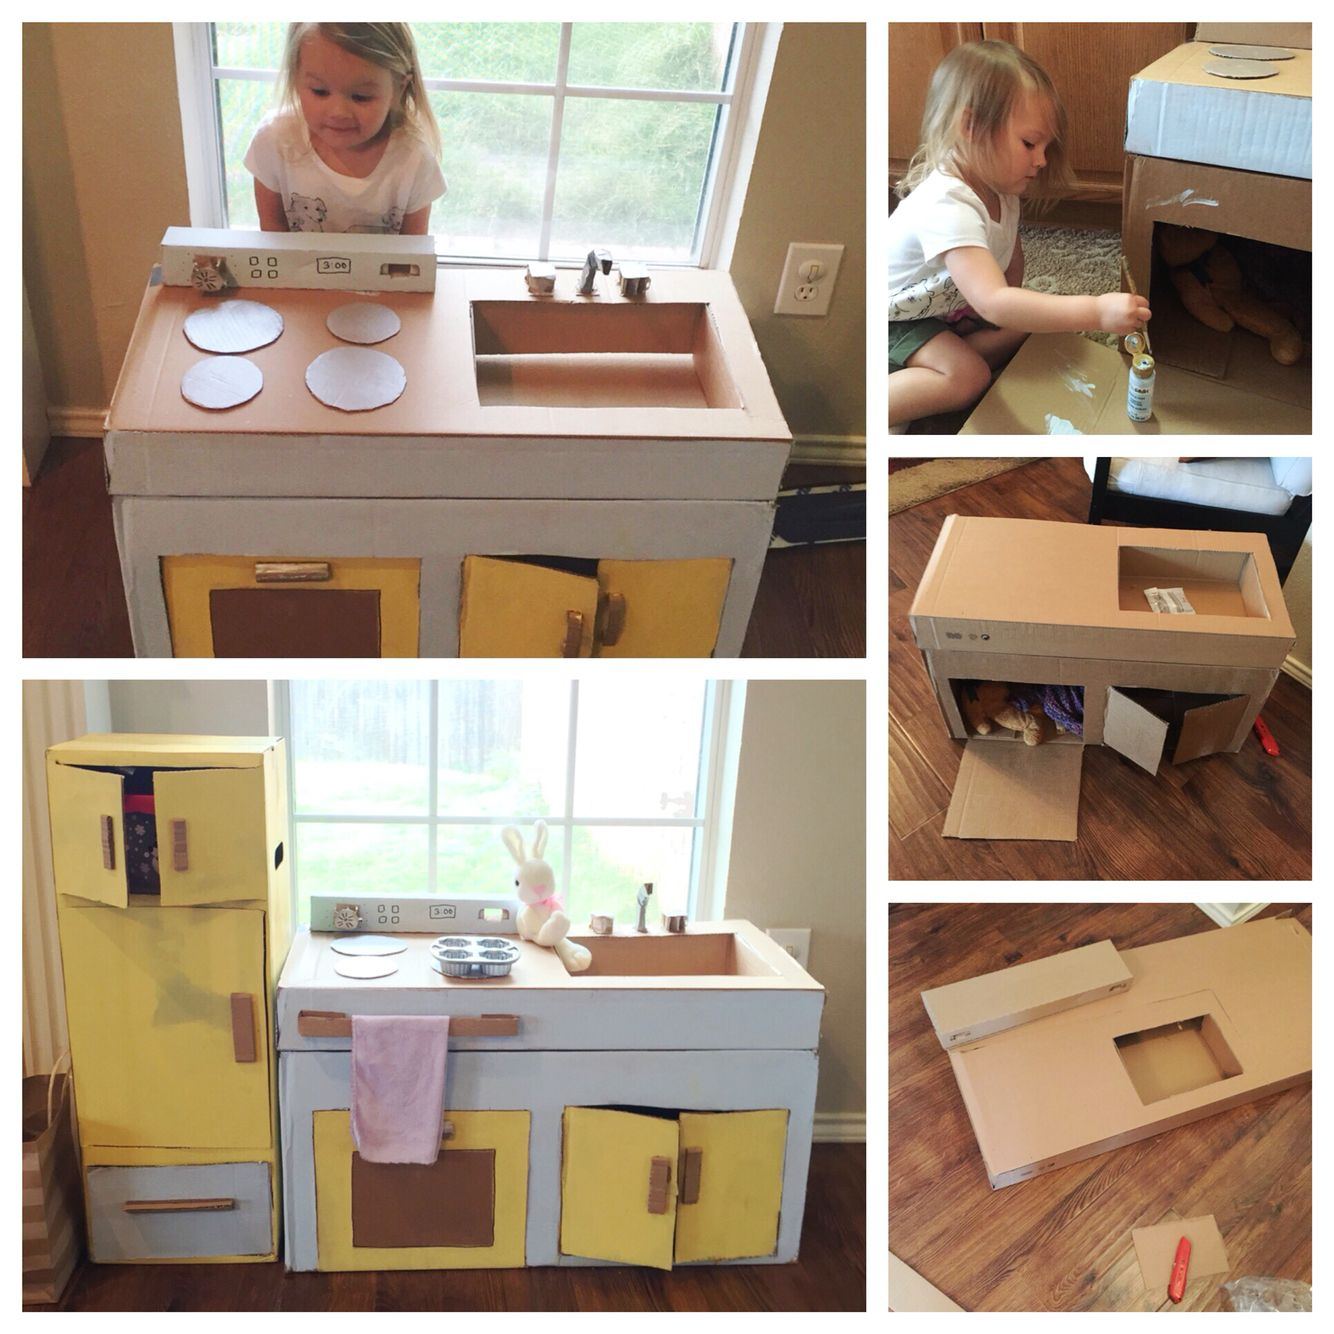 Cocina Carton Cardboard Play Kitchen Diy Kids Kitchen Cardboard Create Cinta